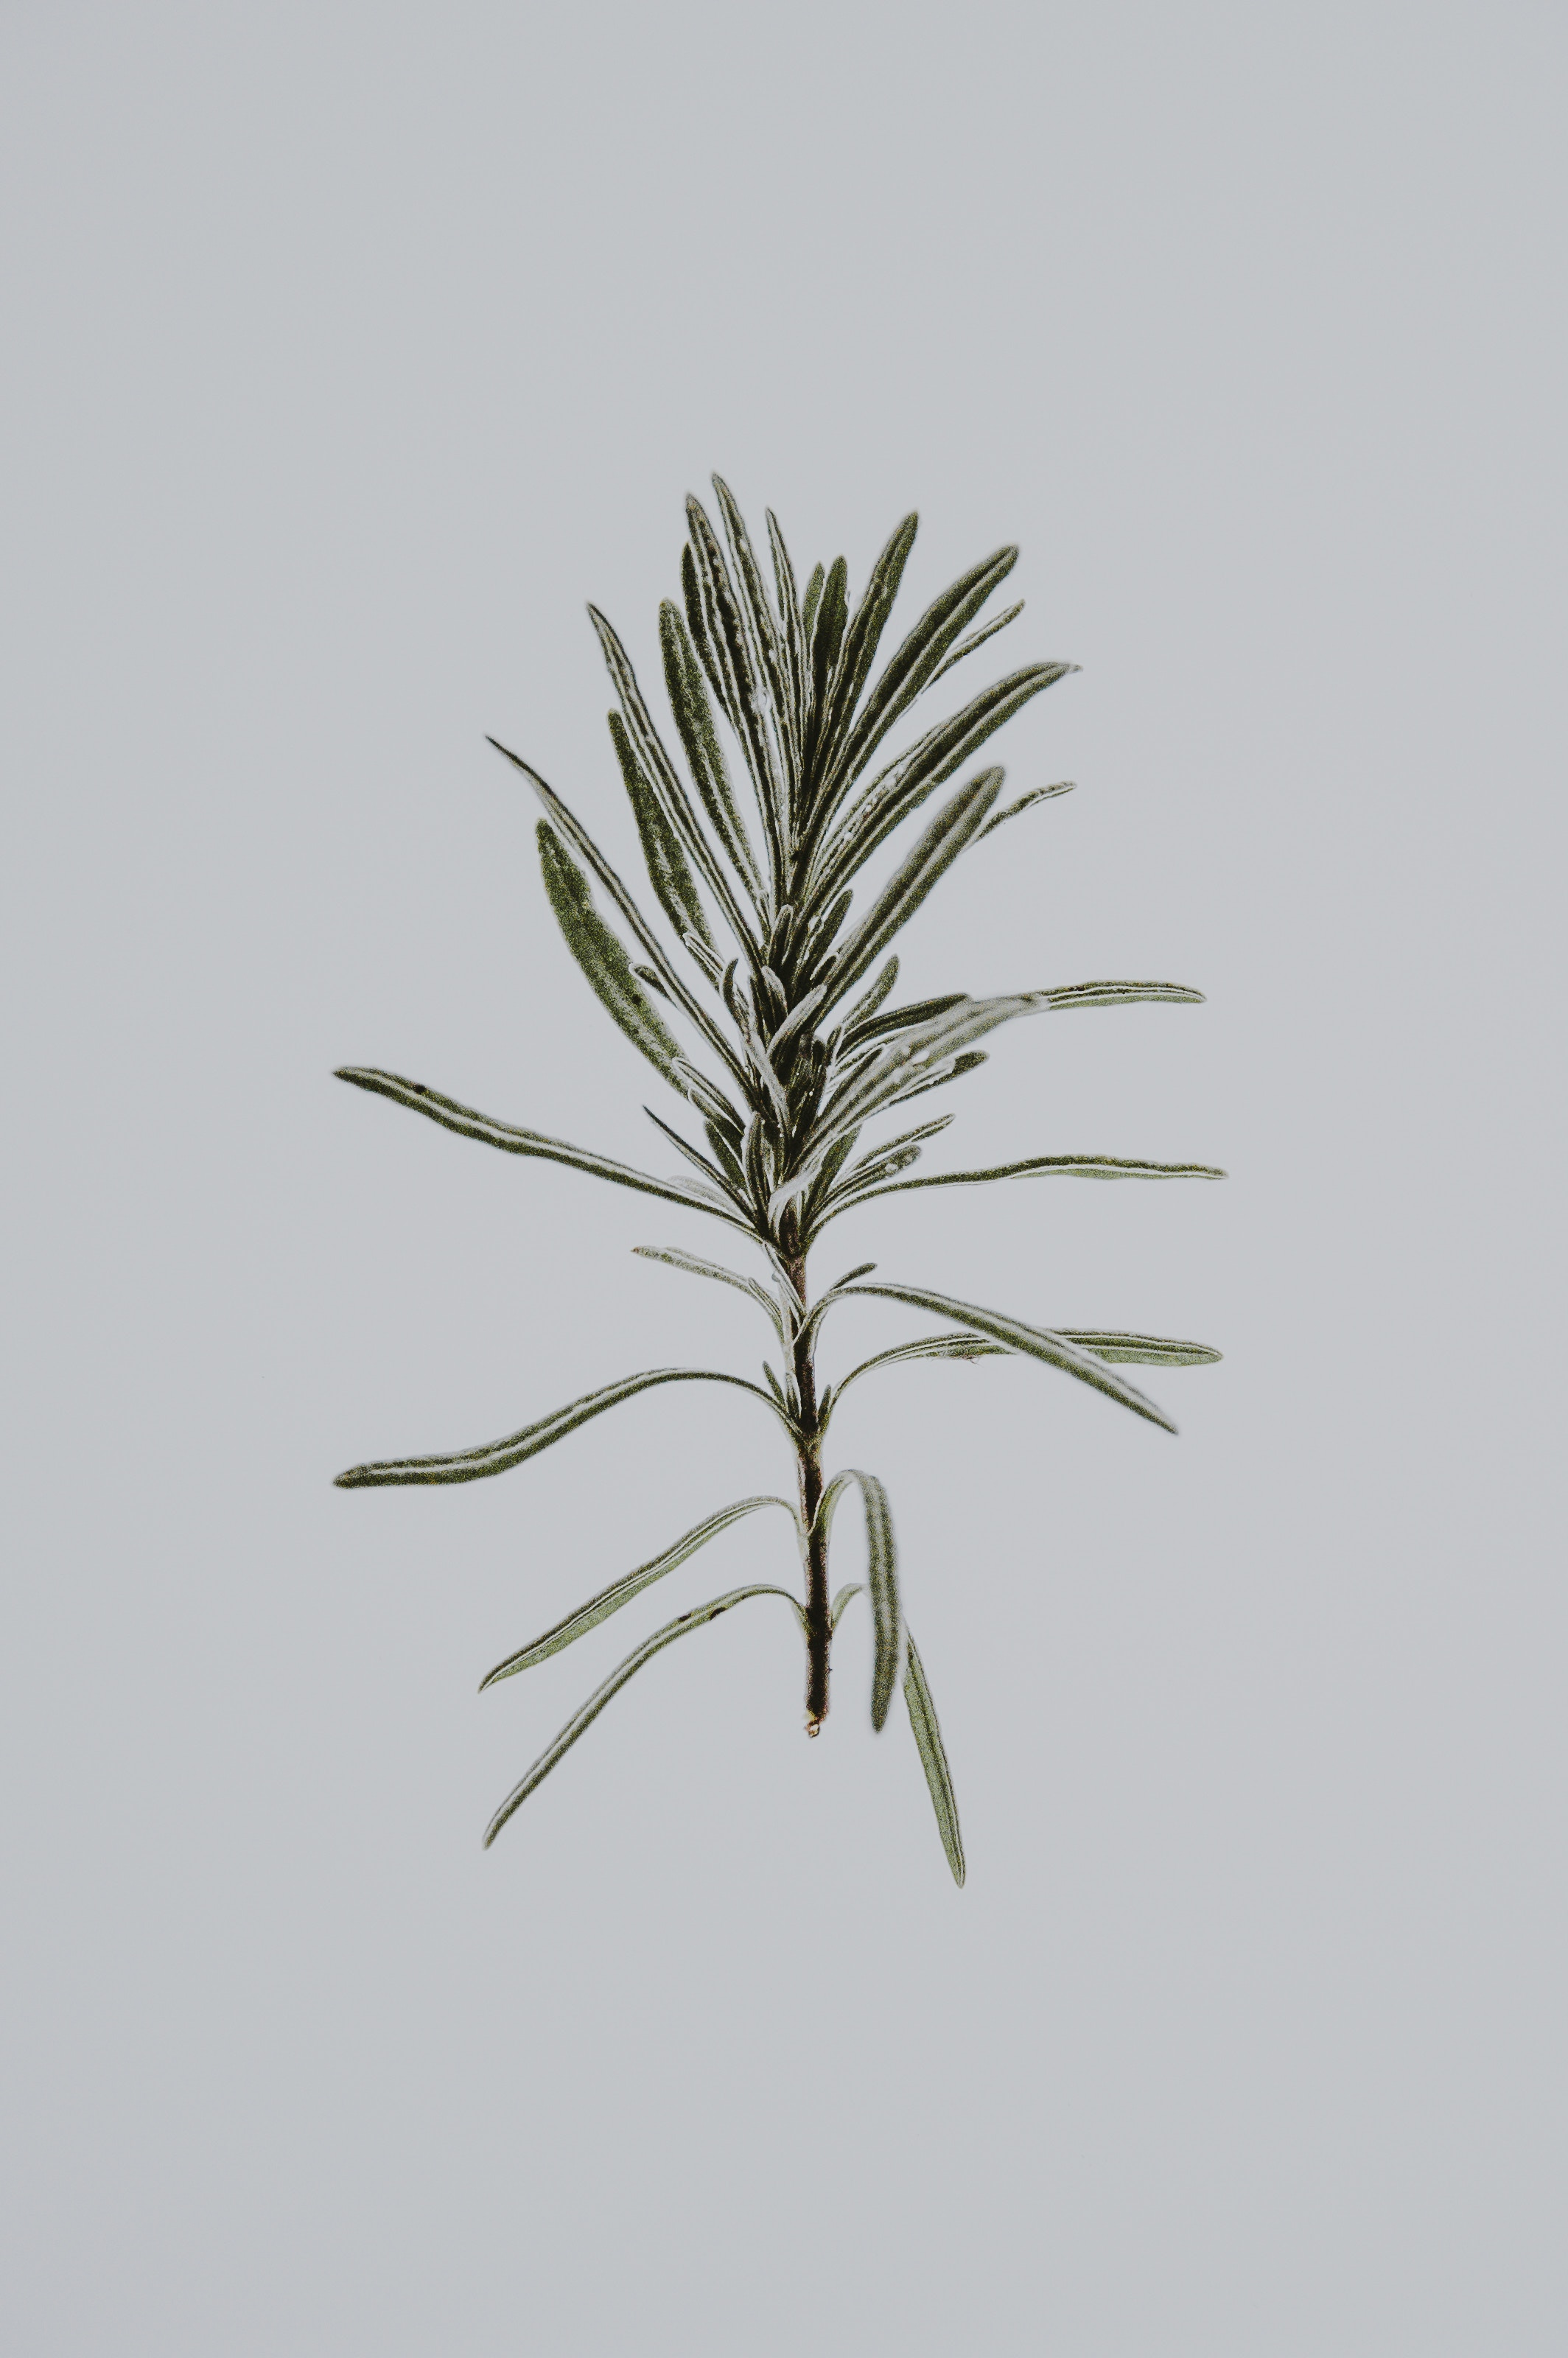 Sniff Rosemary - According to some research, catching a whiff of this aromatic herb may increase alertness and improve memory.To stay sharp, try smelling fresh rosemary or inhaling the scent of rosemary essential oil before a test, meeting, pliates class or even before playing golf!